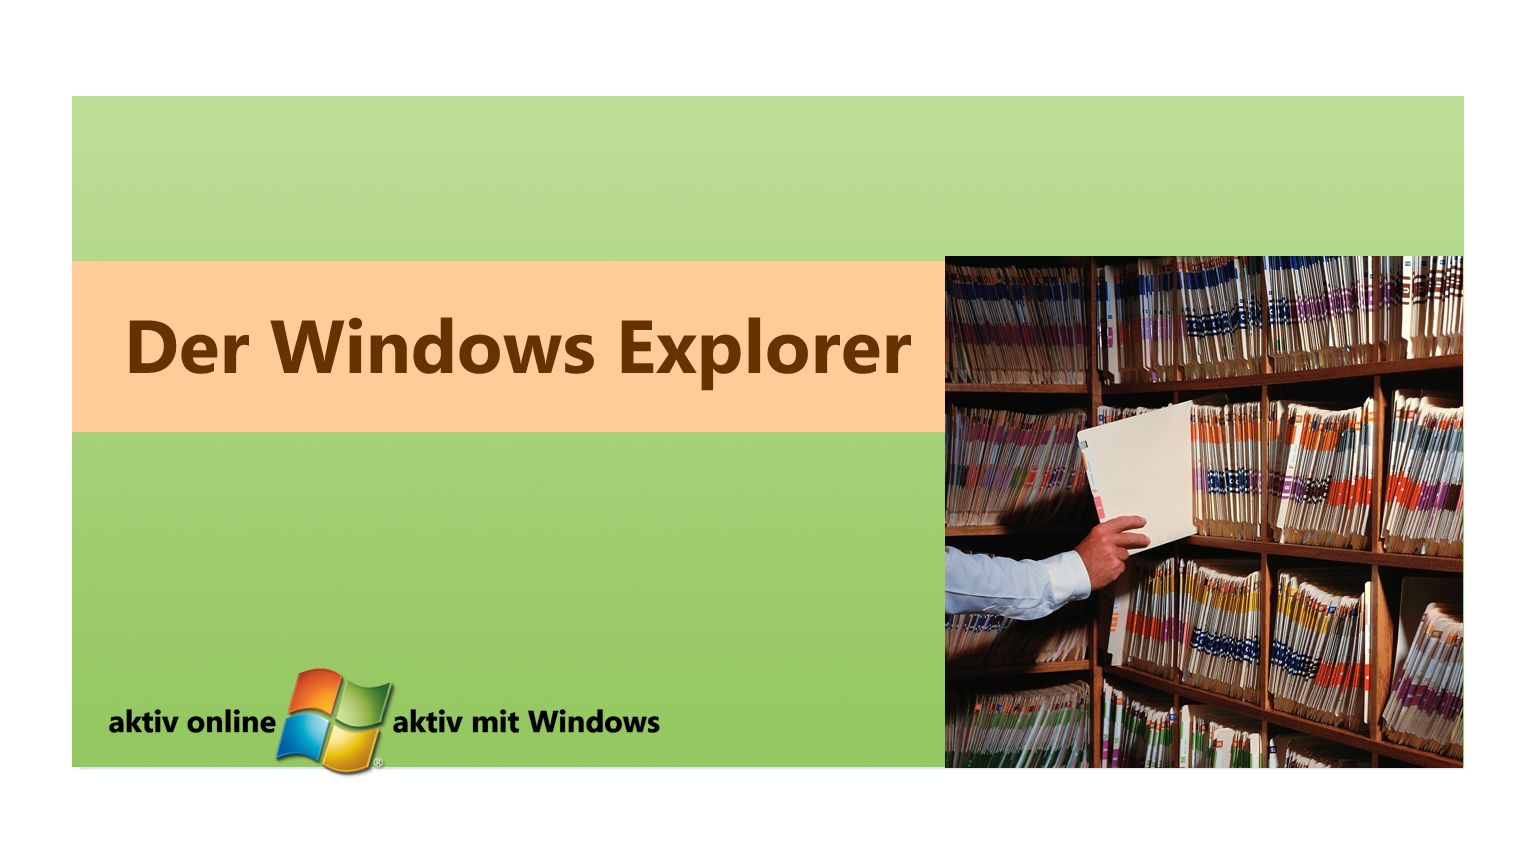 Der Windows Explorer